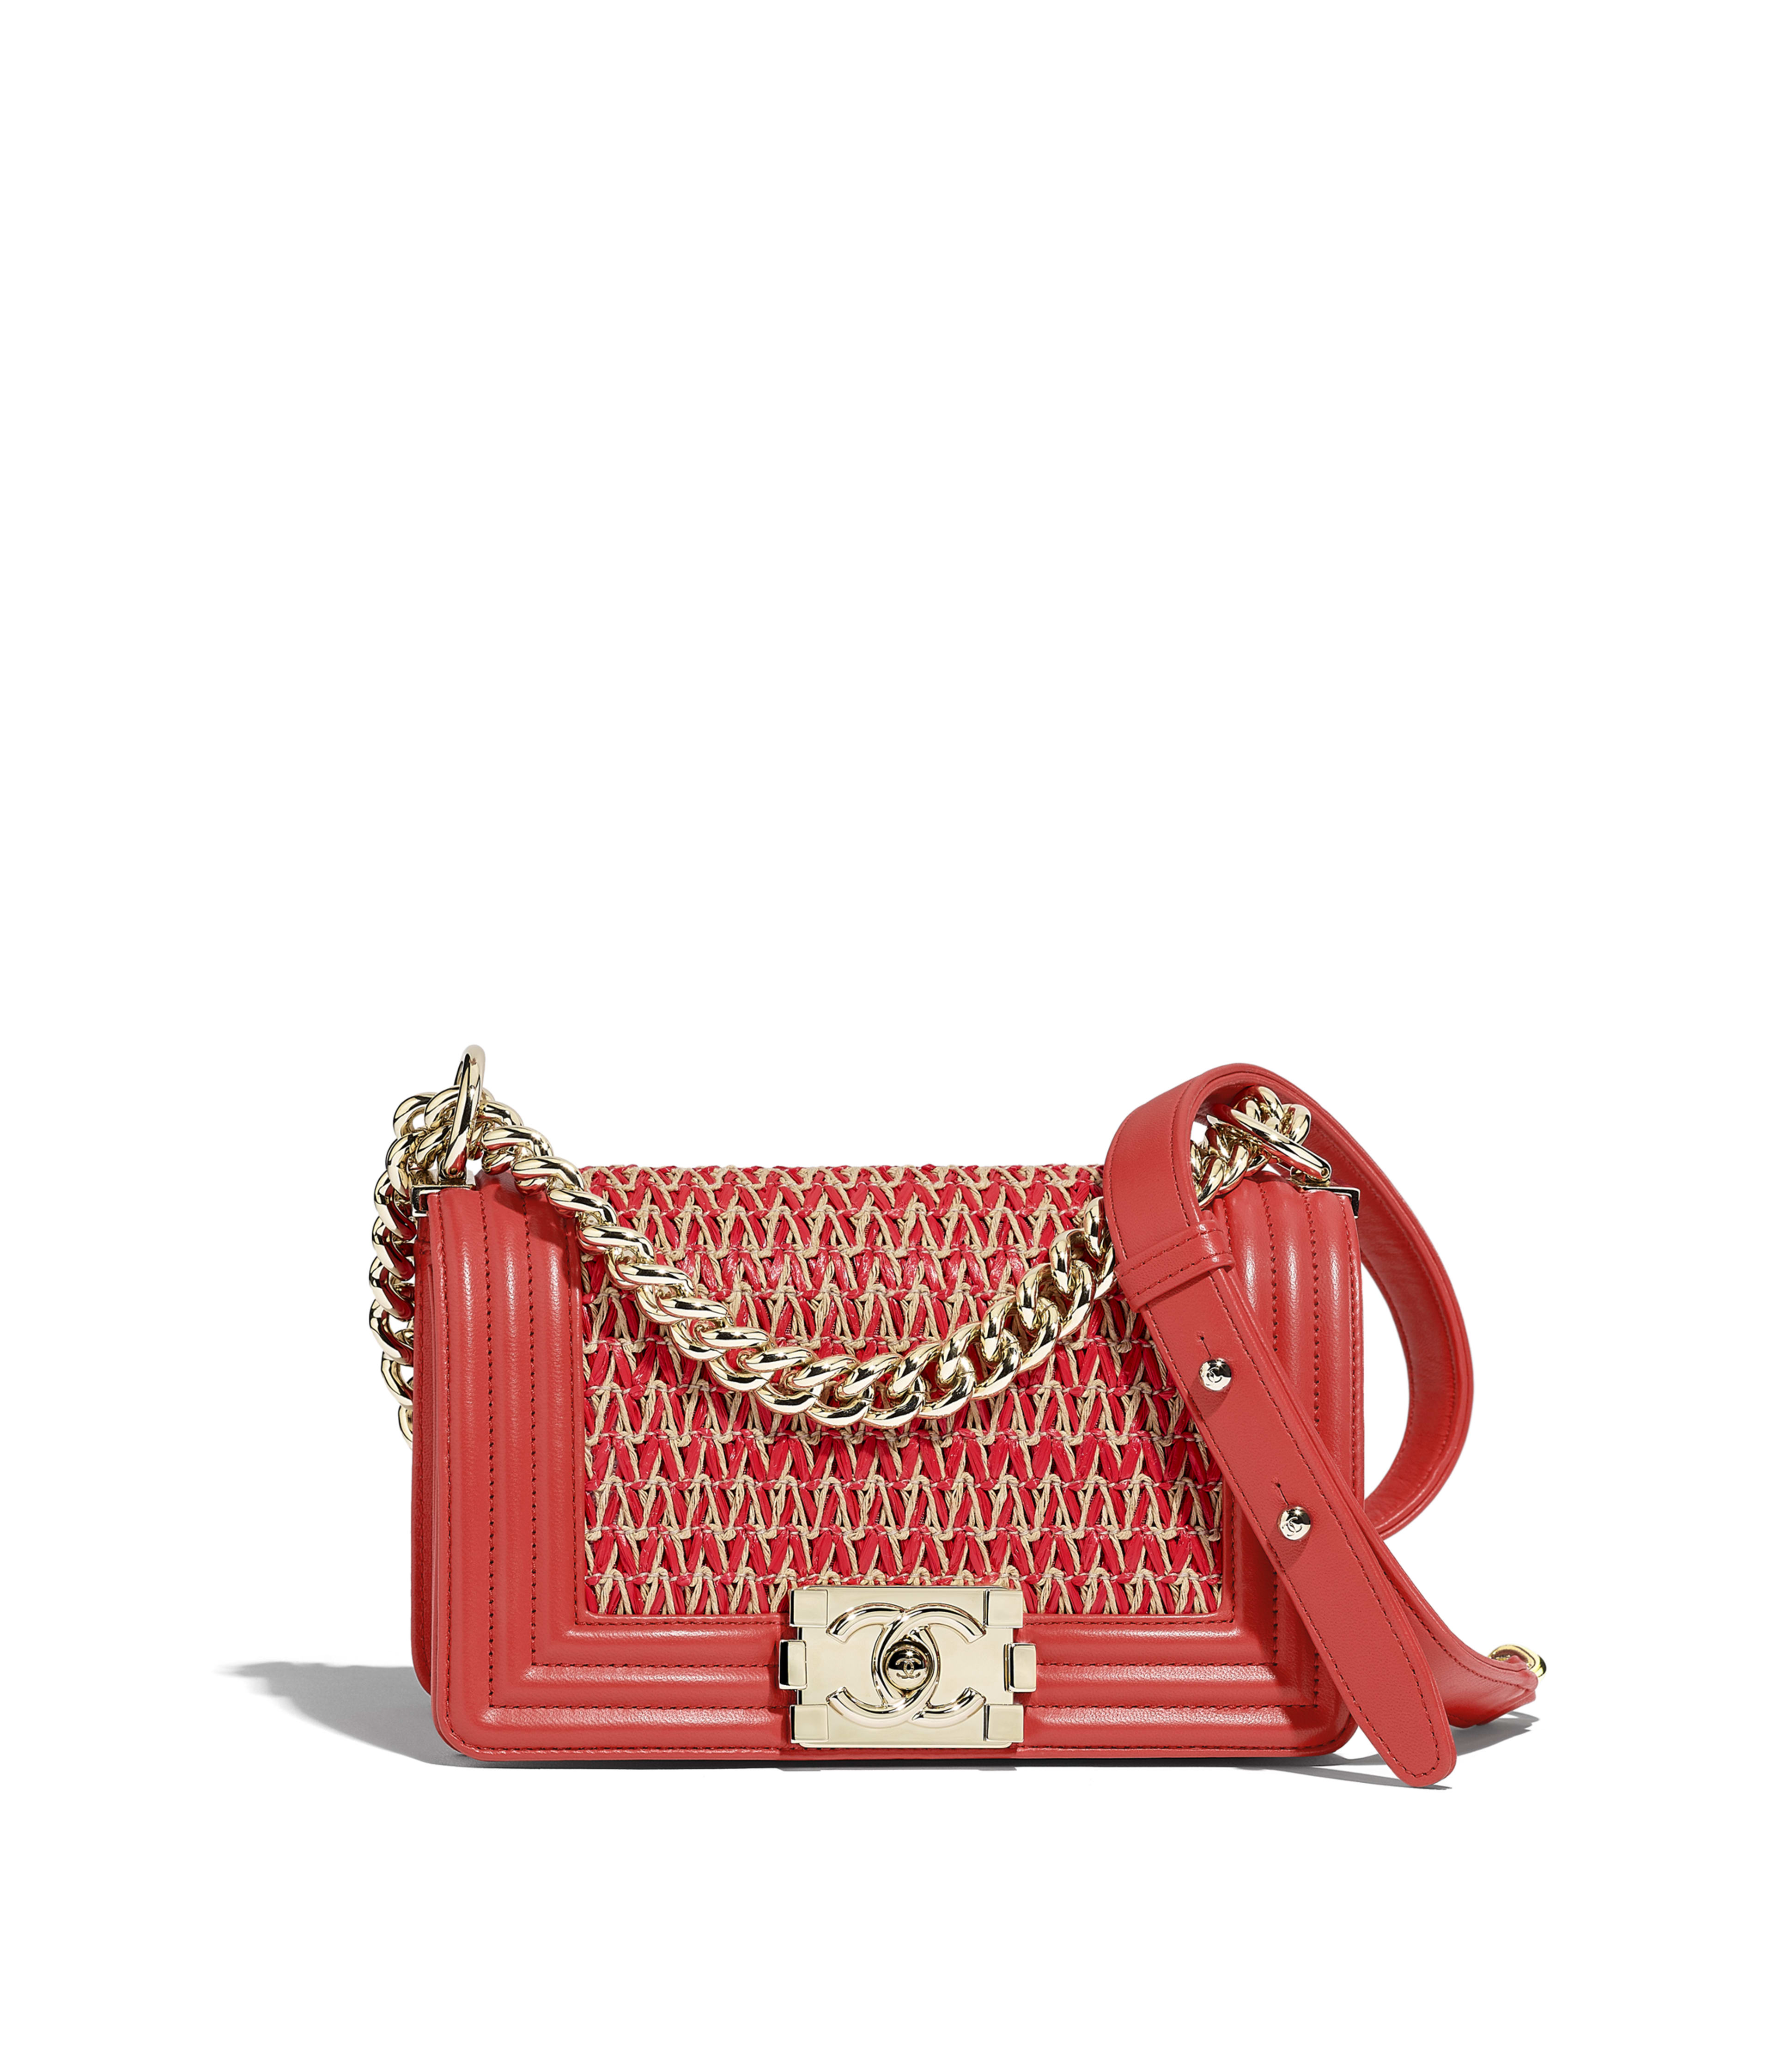 f79727d16aec Small BOY CHANEL Handbag Cotton, Lambskin & Gold-Tone Metal, Red & Beige  Ref. A67085B00353N4131